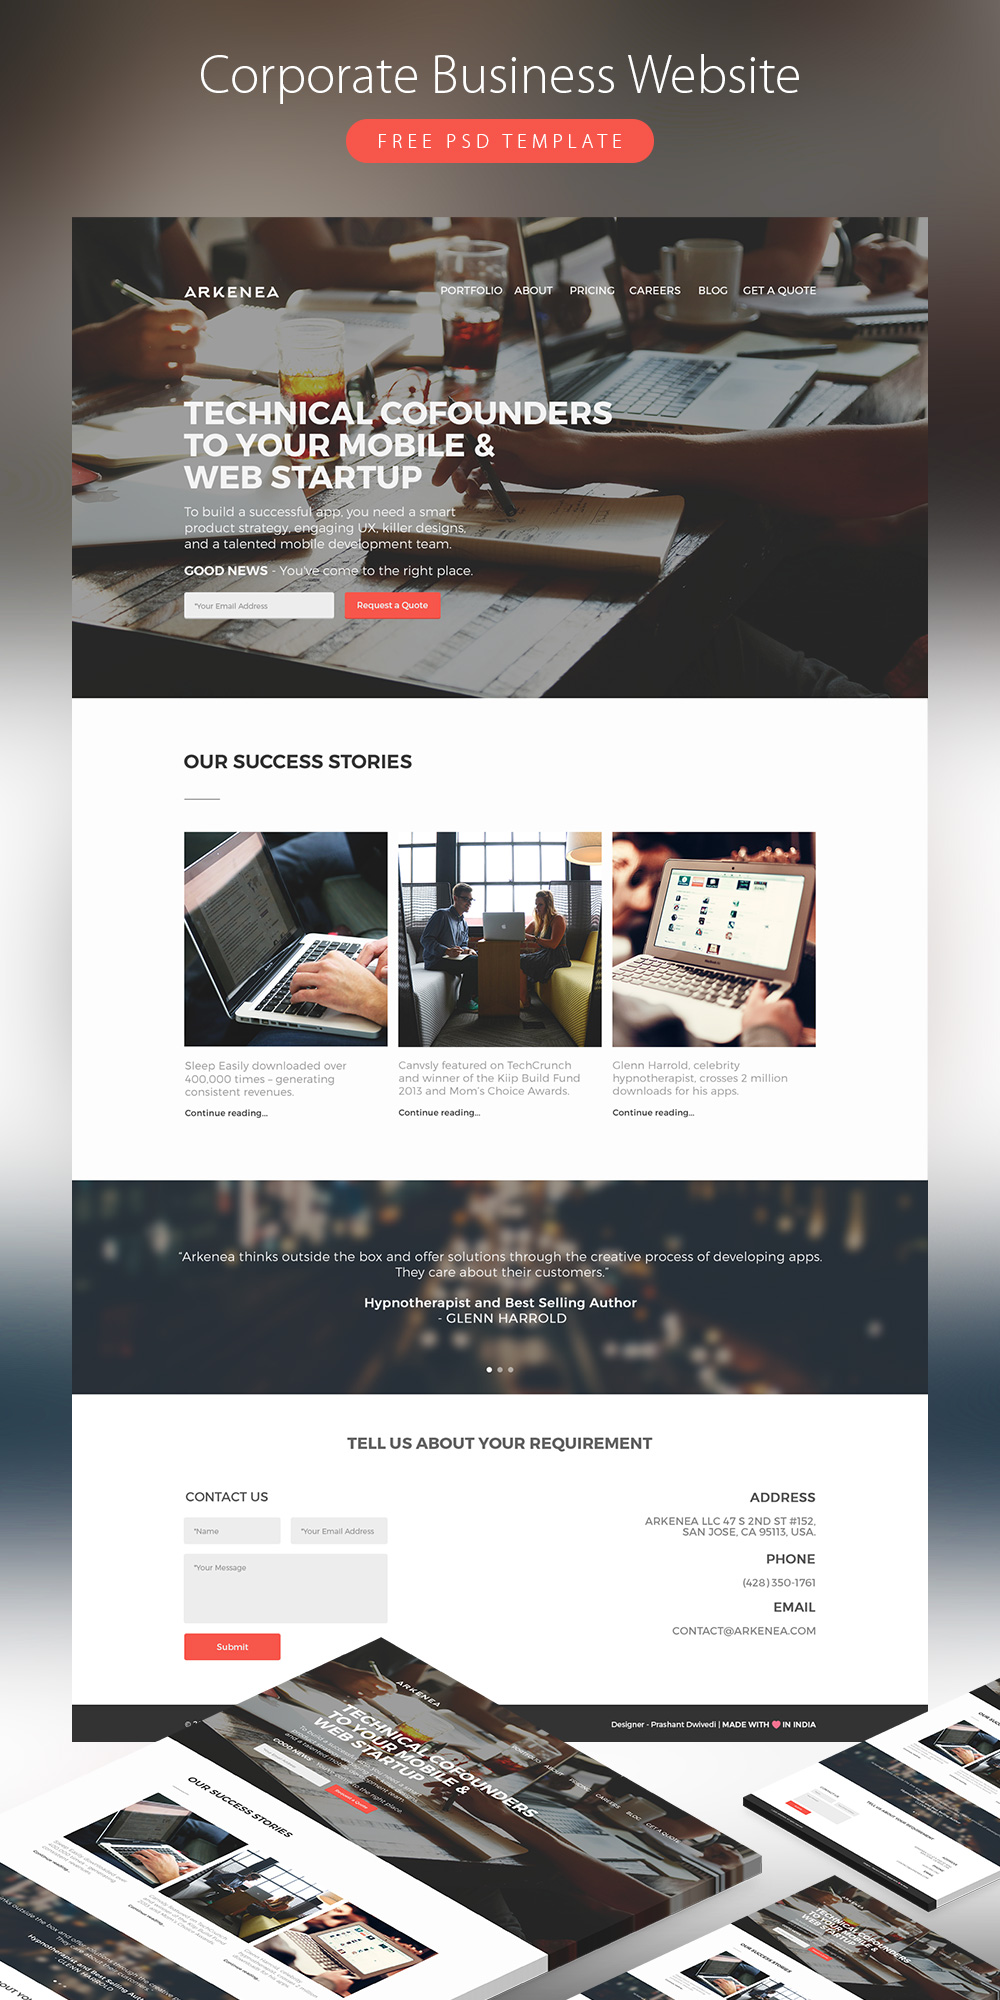 Corporate business website template free psd download download psd corporate business website template free psd wajeb Gallery